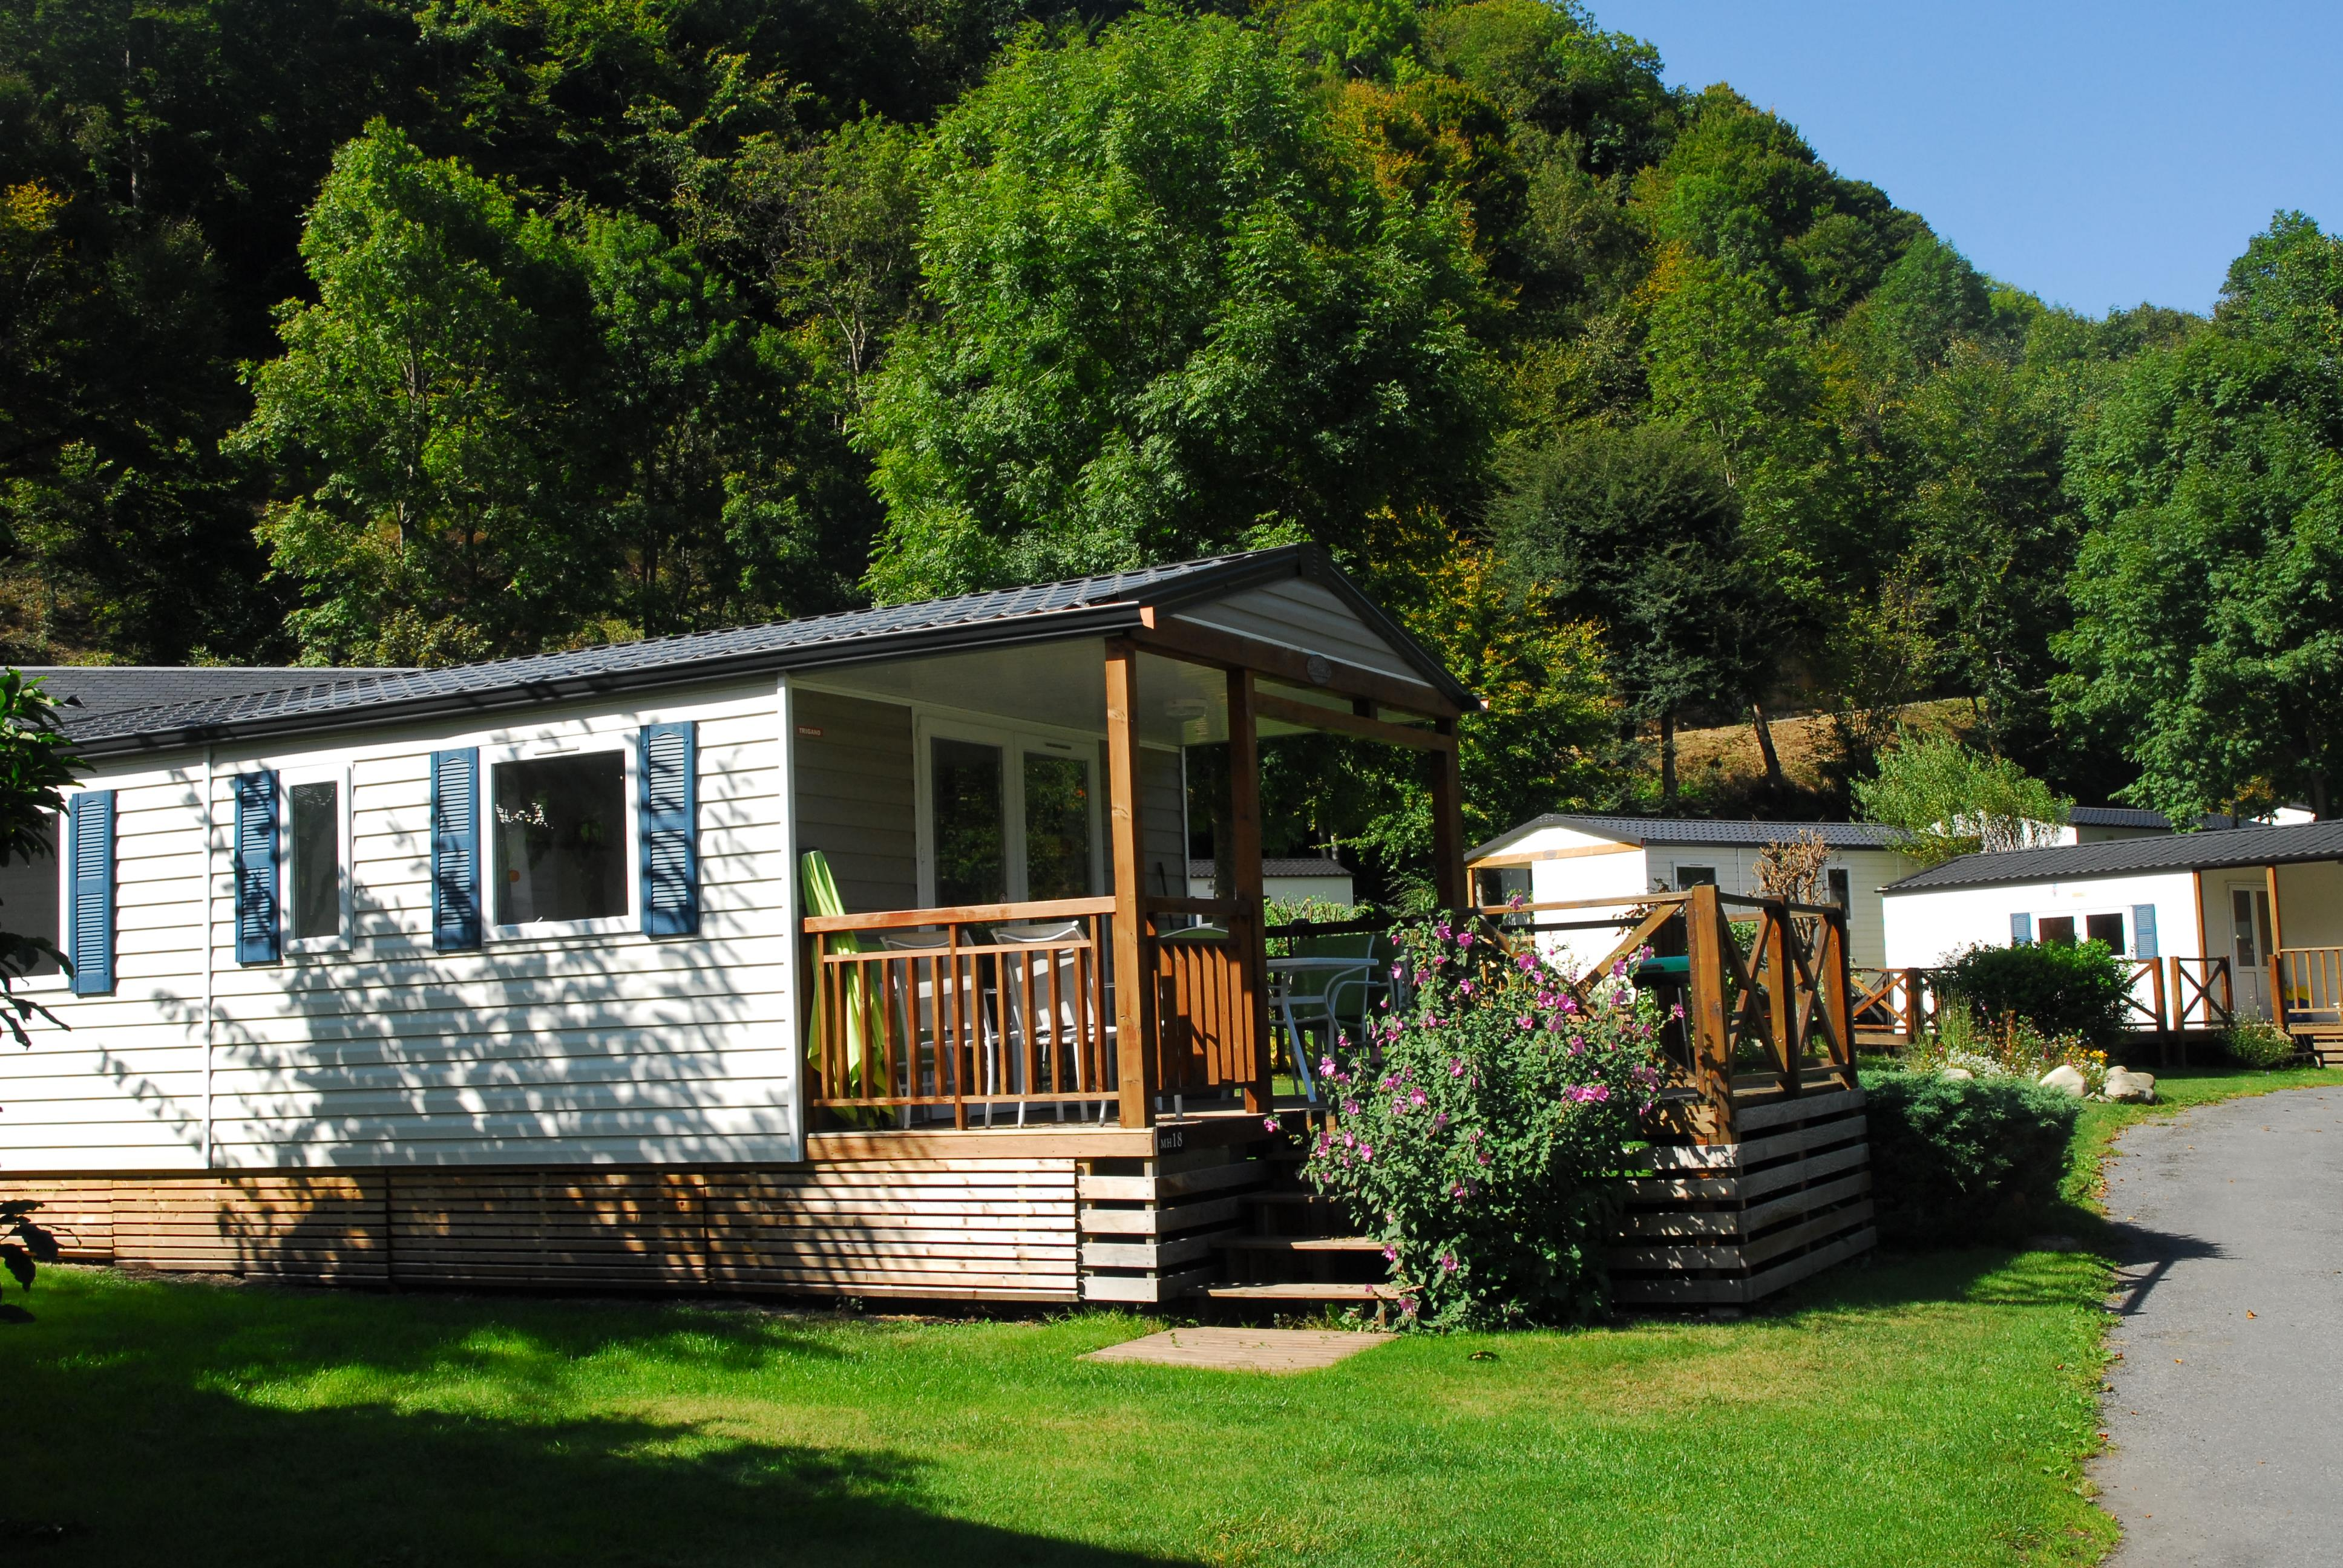 Locatifs - Mobile-Home - Camping PYRENEES NATURA